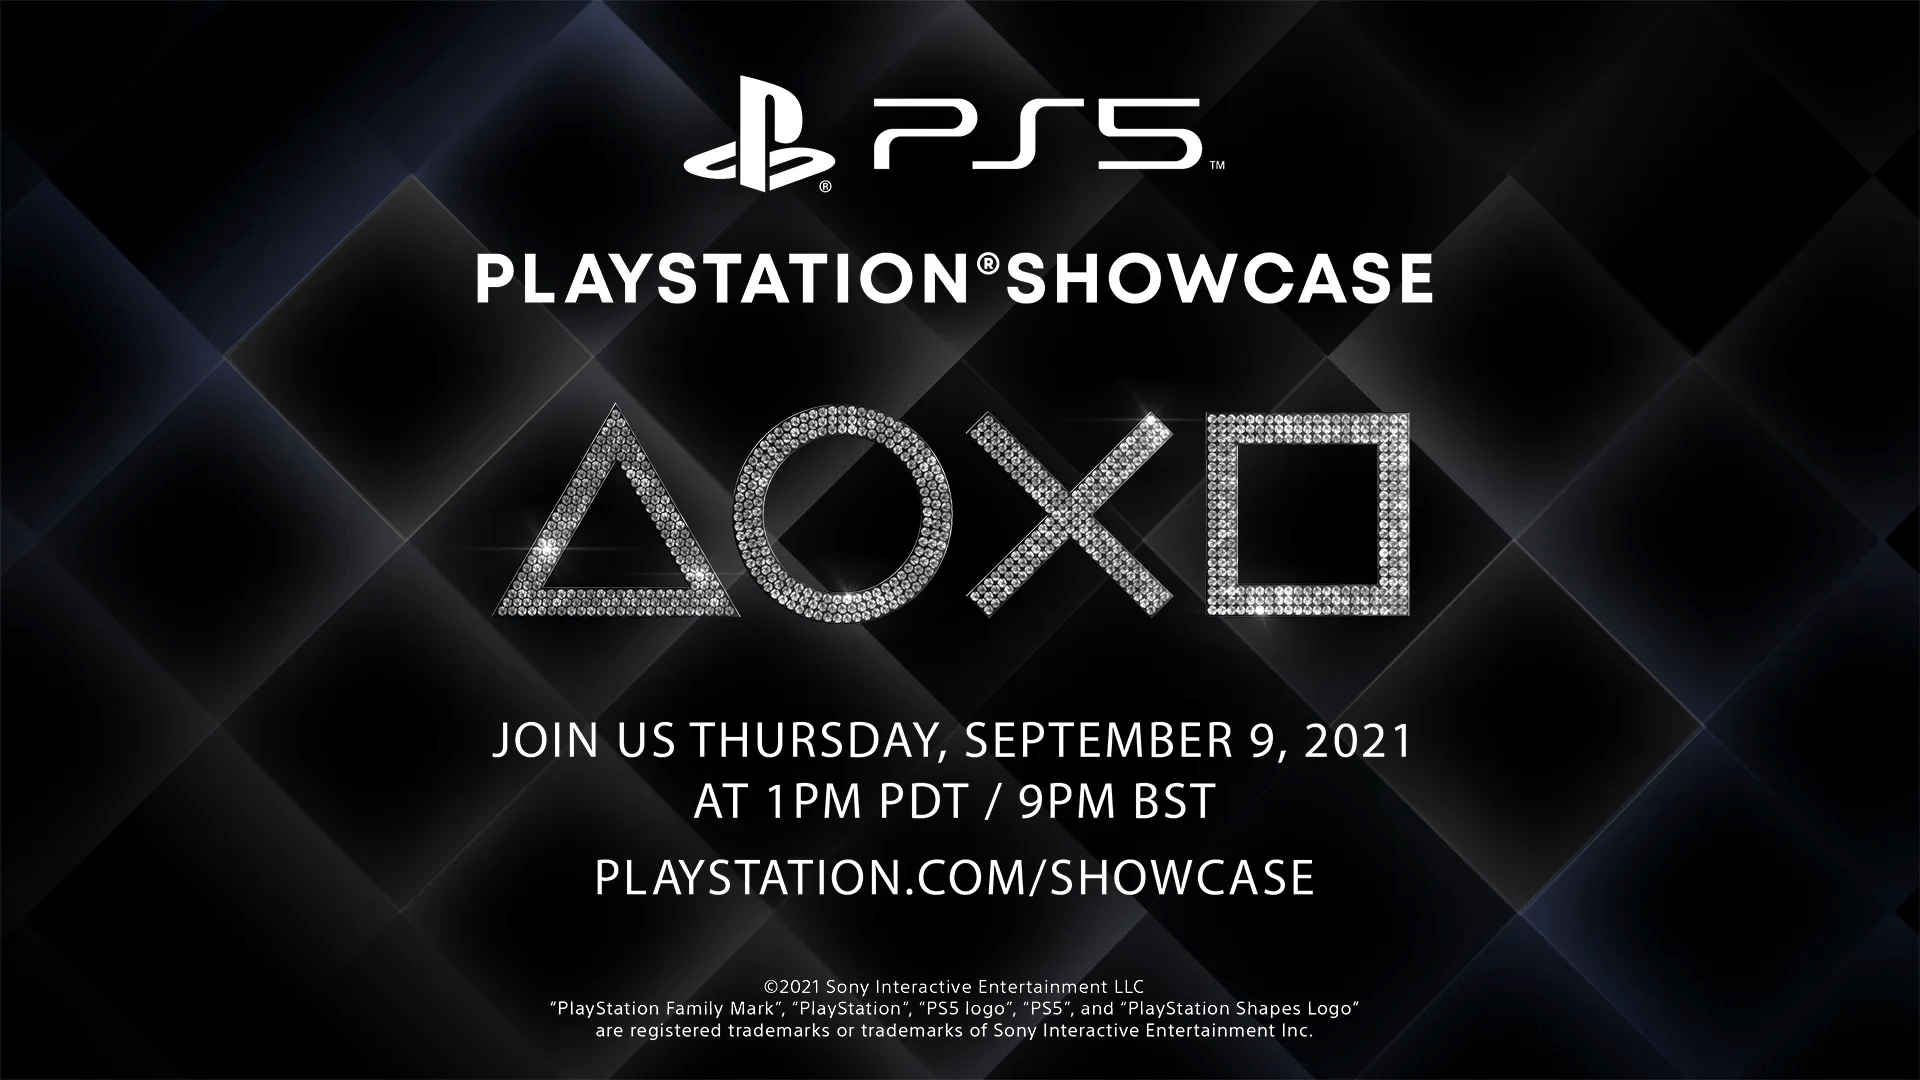 Gaming, Spiele, Sony, PlayStation 5, ps5, Event, Präsentation, Showcase